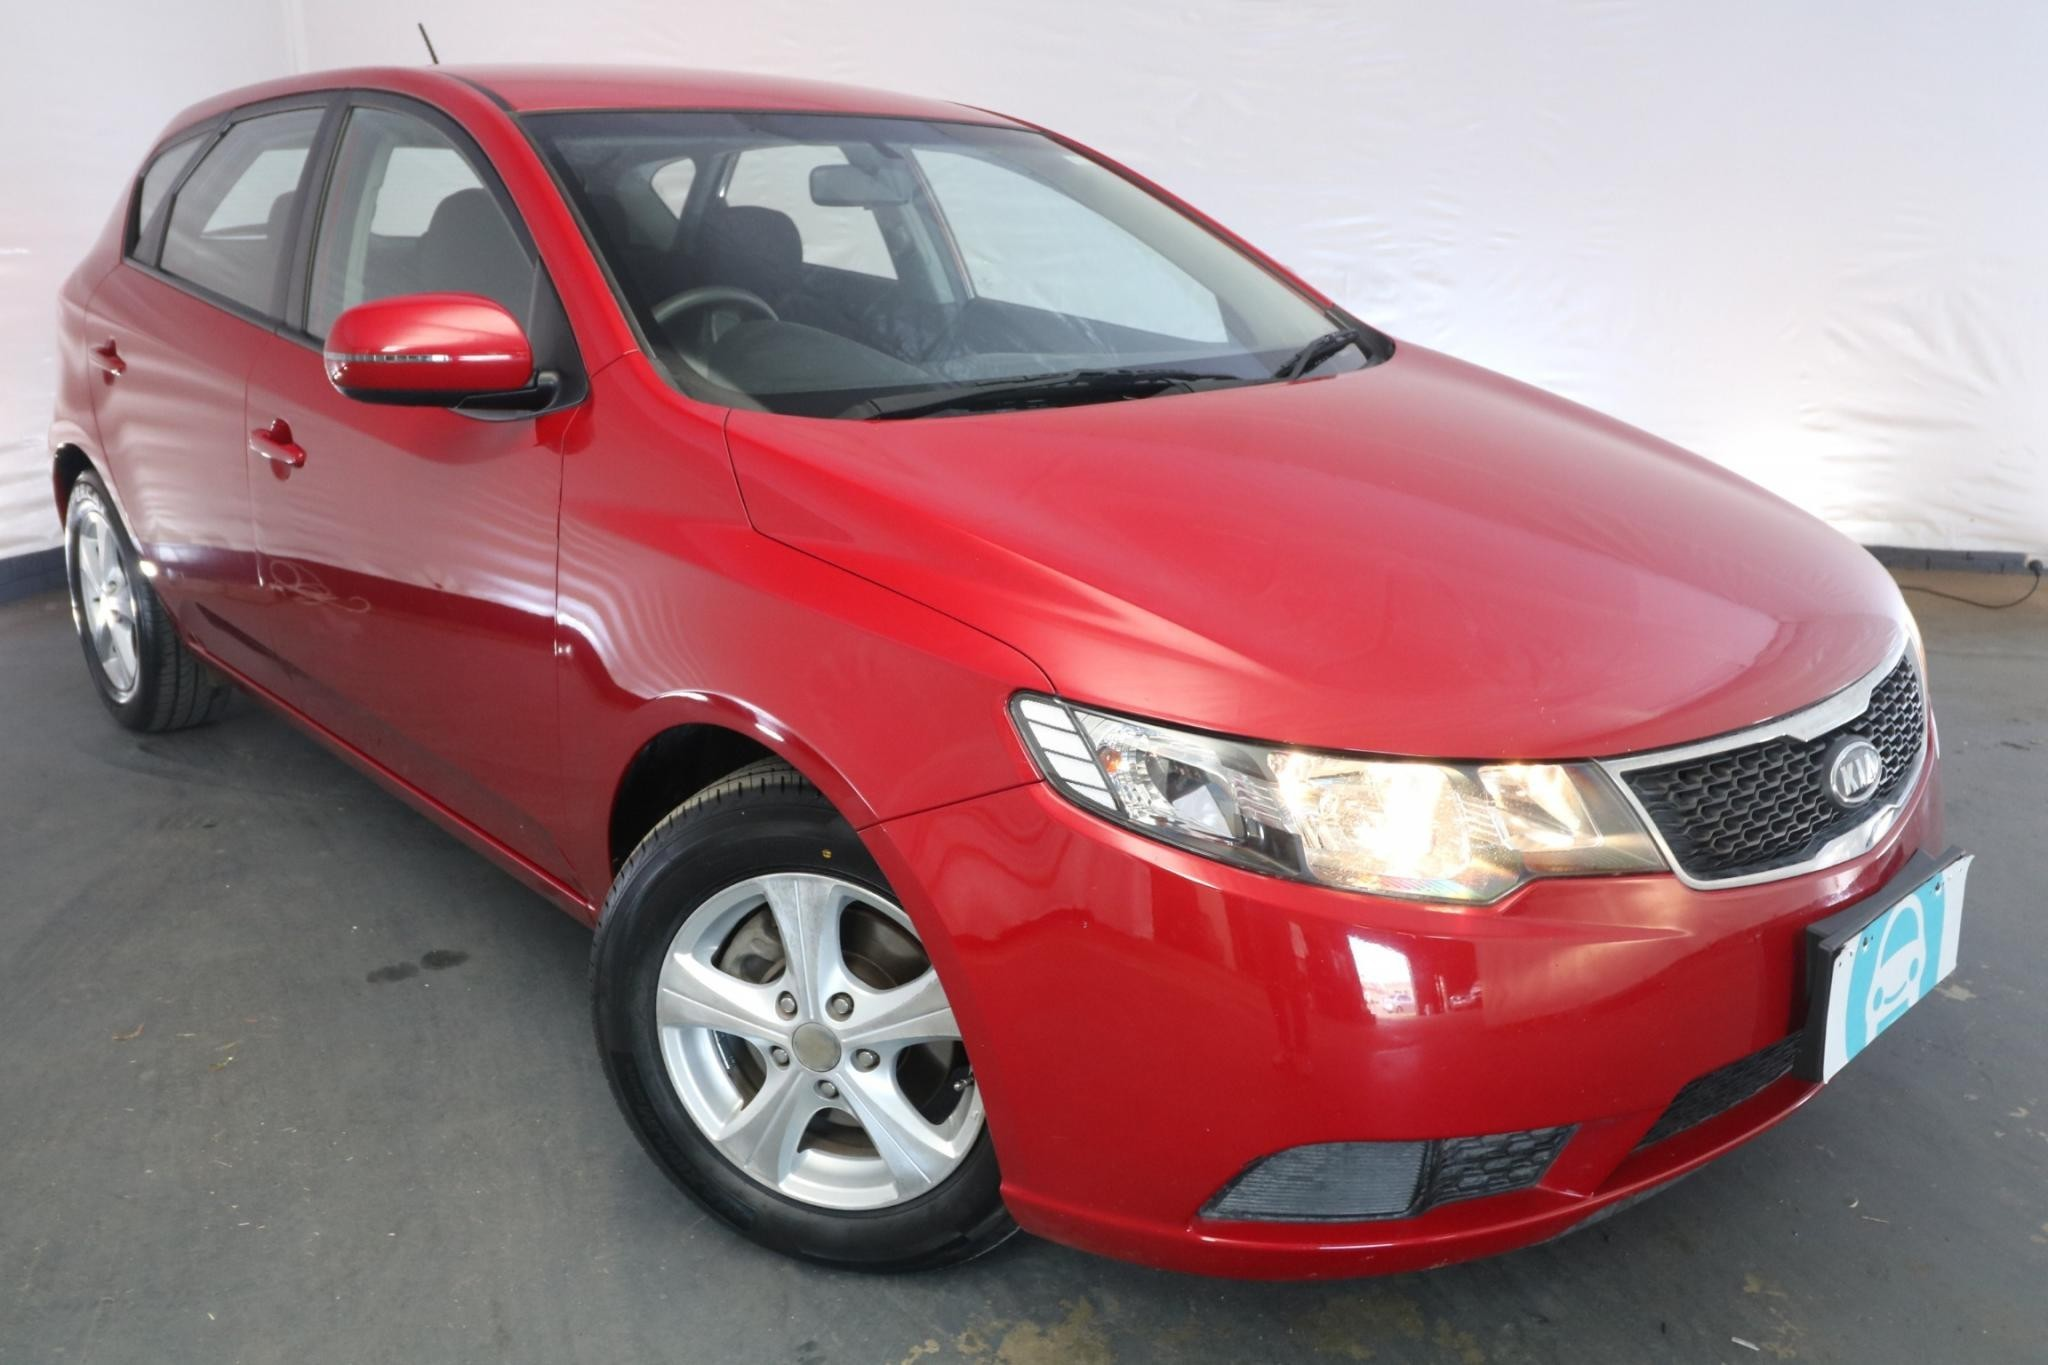 2012 Kia Cerato Si TD MY13 / 6 Speed Automatic / Hatchback / 2.0L / 4 Cylinder / Petrol / 4x2 / 5 door / Model Year '13 October release OFX12J